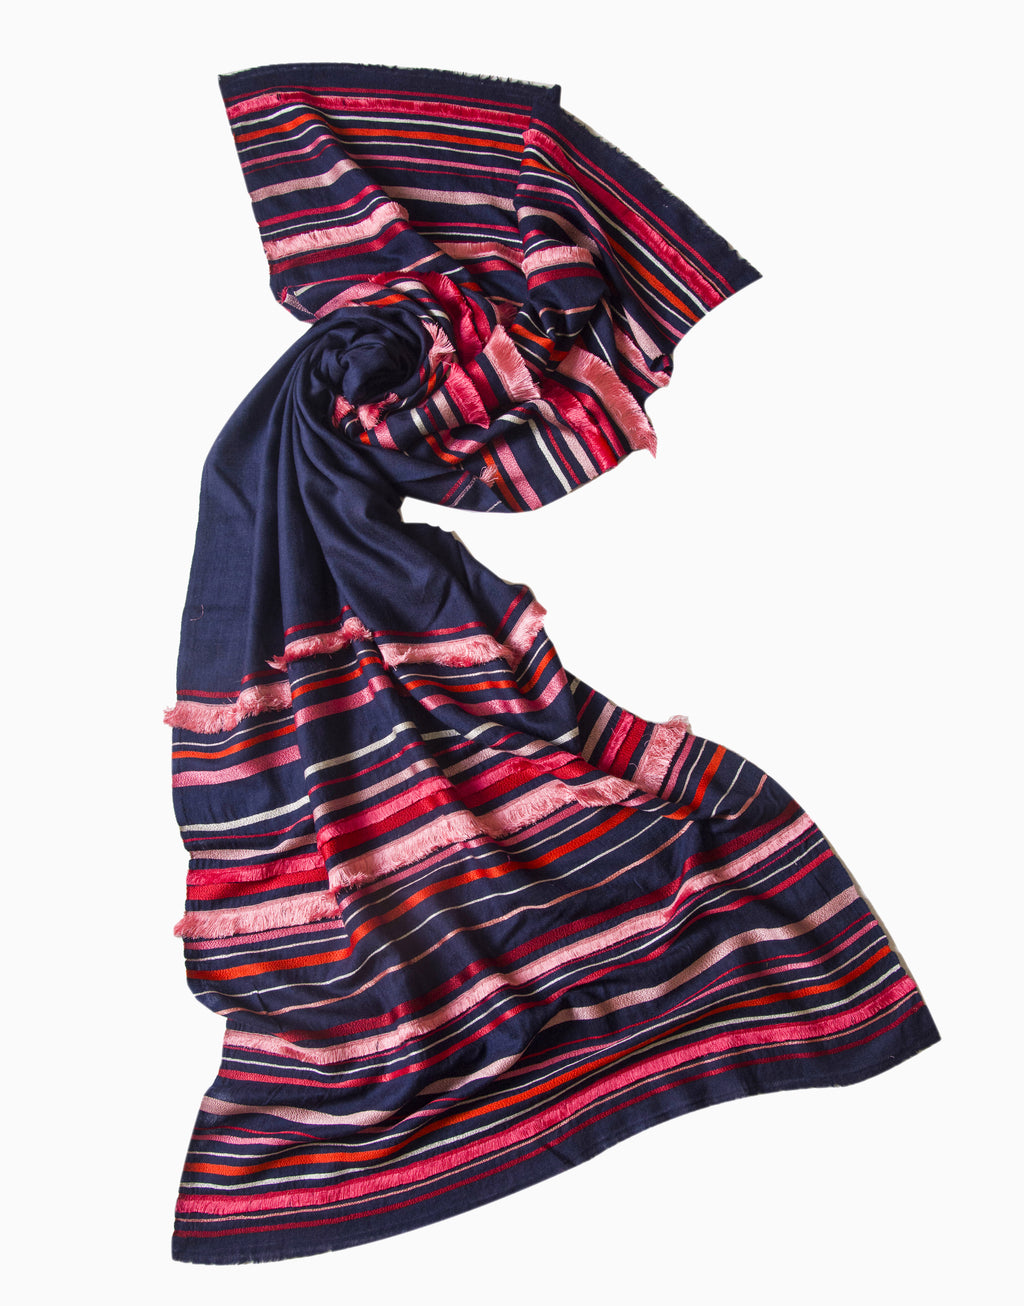 VILASA NAVY EMBROIDERED WOOL SCARF